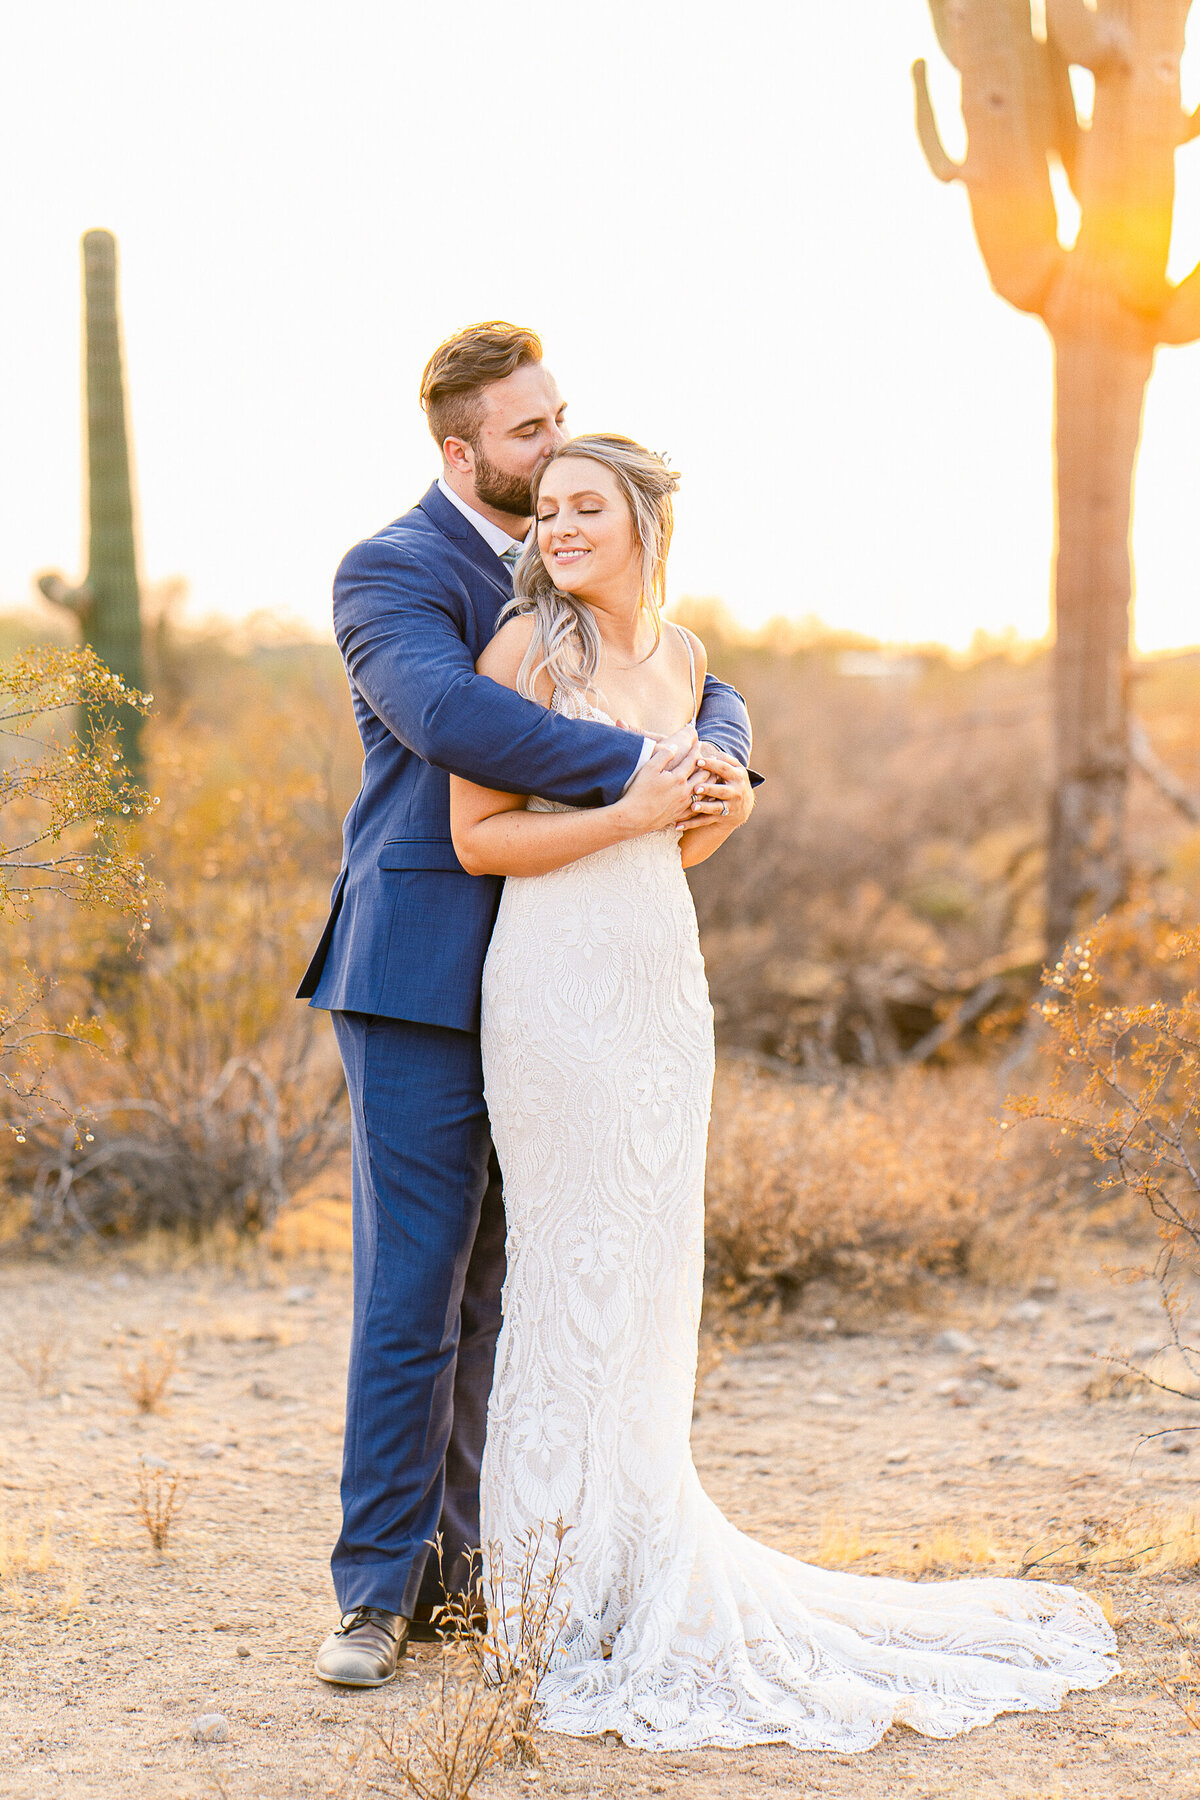 Intimate Desert Wedding In The Superstition Mountain - Phoenix Wedding Photographer - Atlas Rose Photography AZ02